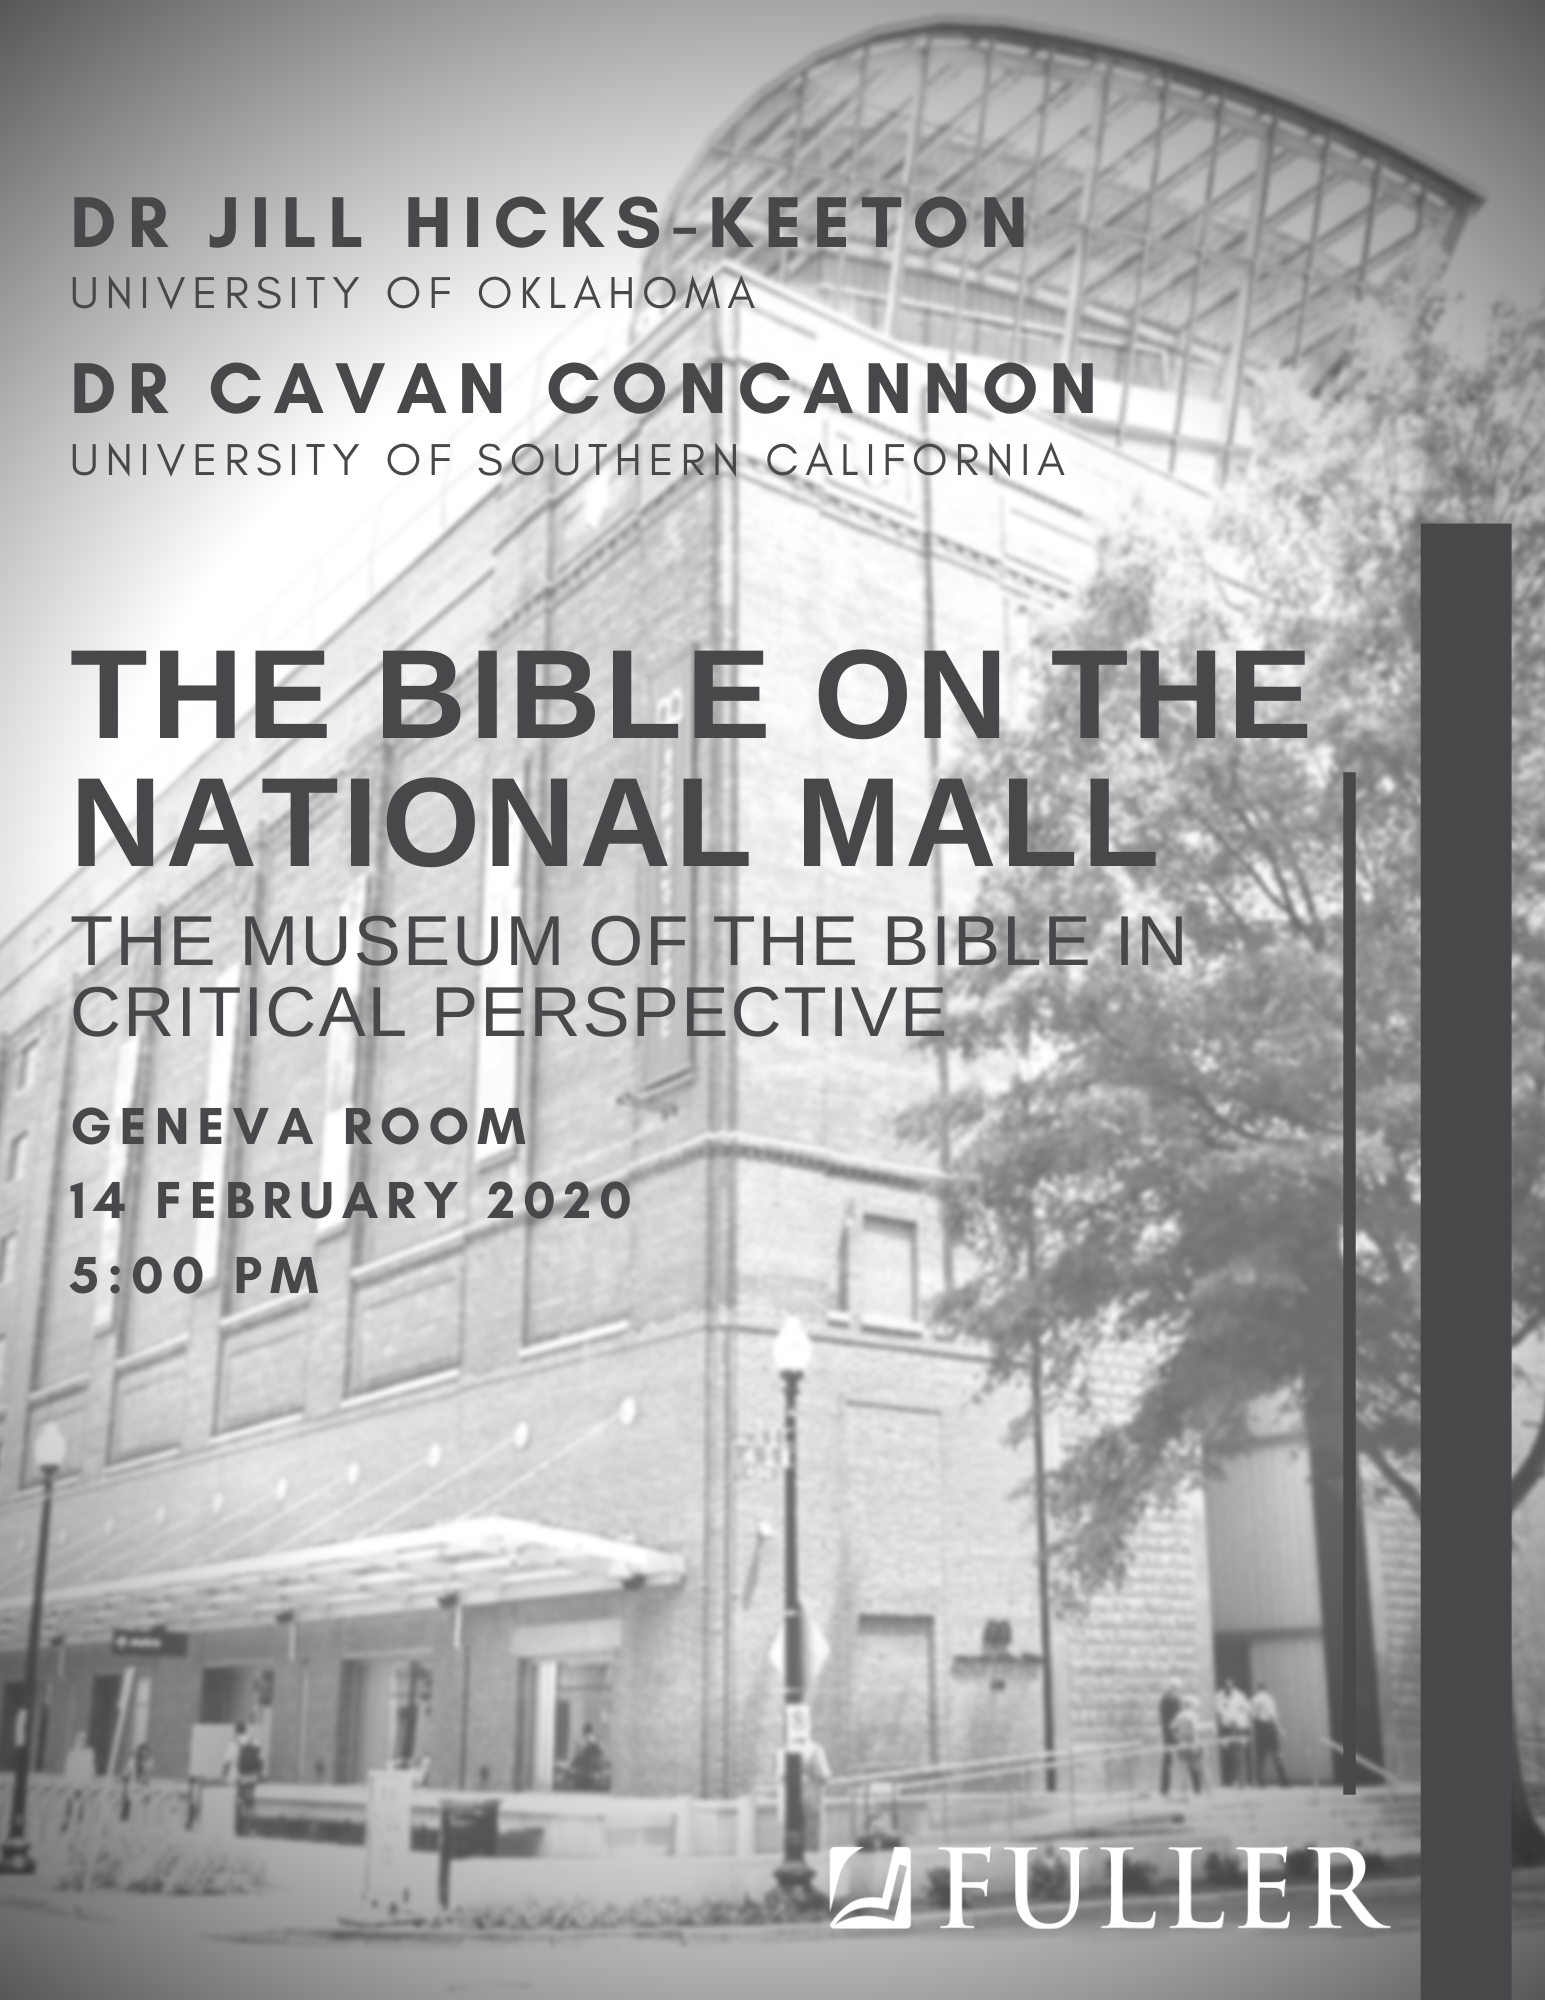 The Bible on the National Mall event flyer